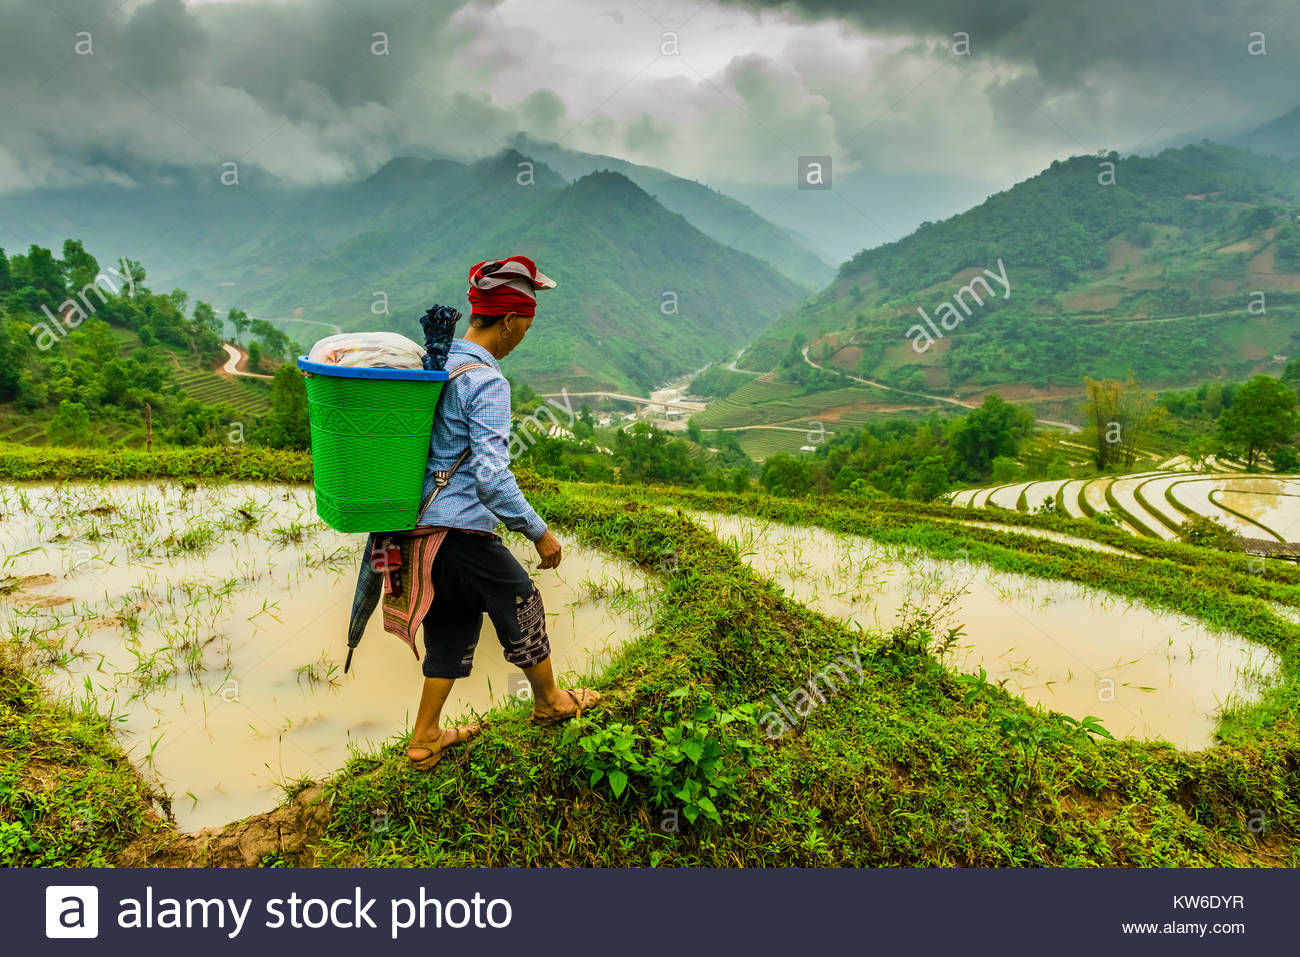 Red Dao hill tribe woman hiking through rice terraces, Muong Hoa Valley, near Sapa, northern Vietnam. - Stock Image